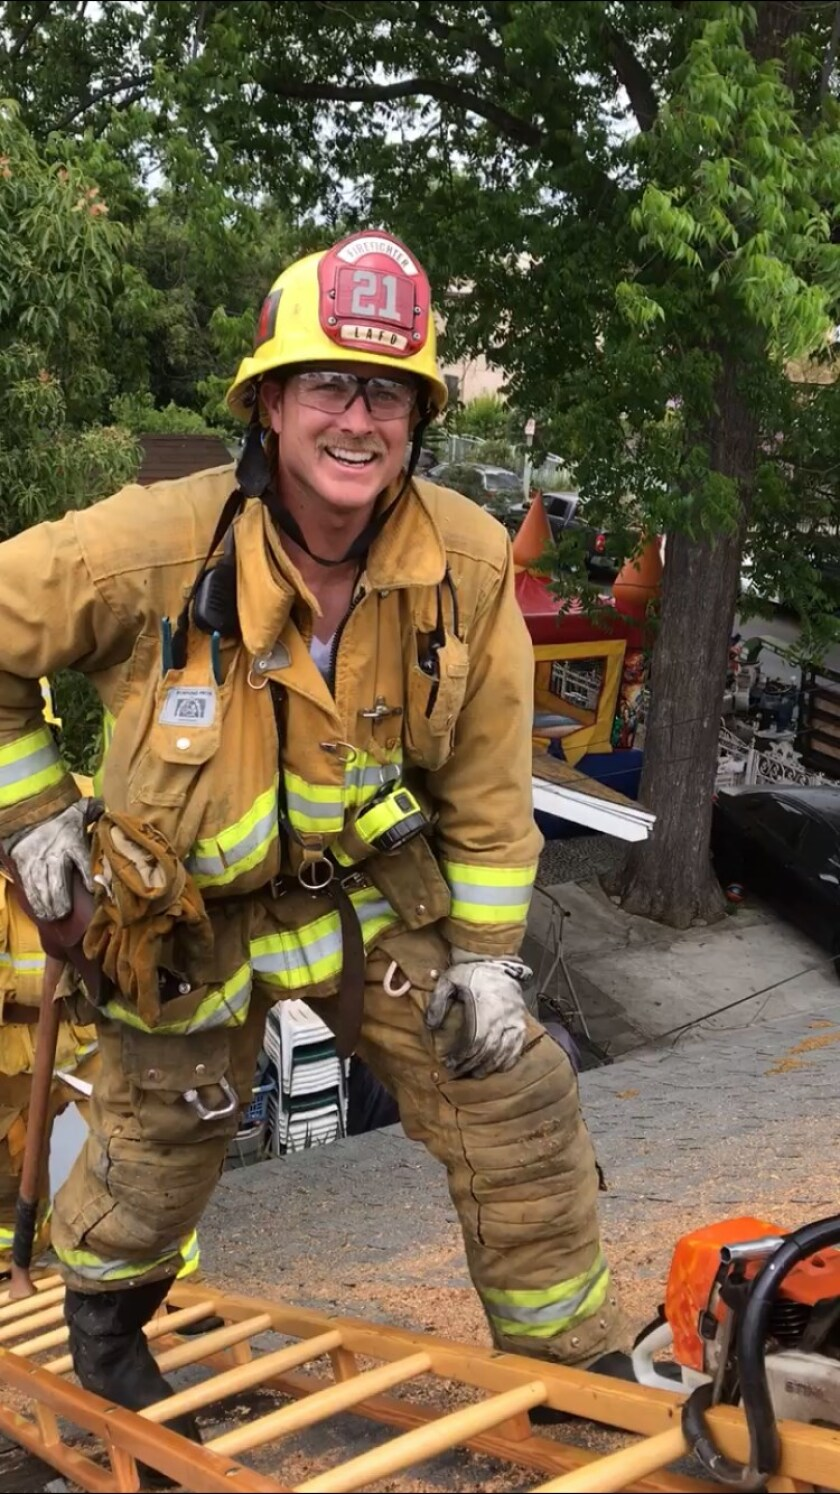 Eric Stevens is the youngest of four brothers and one of two who became firefighters.